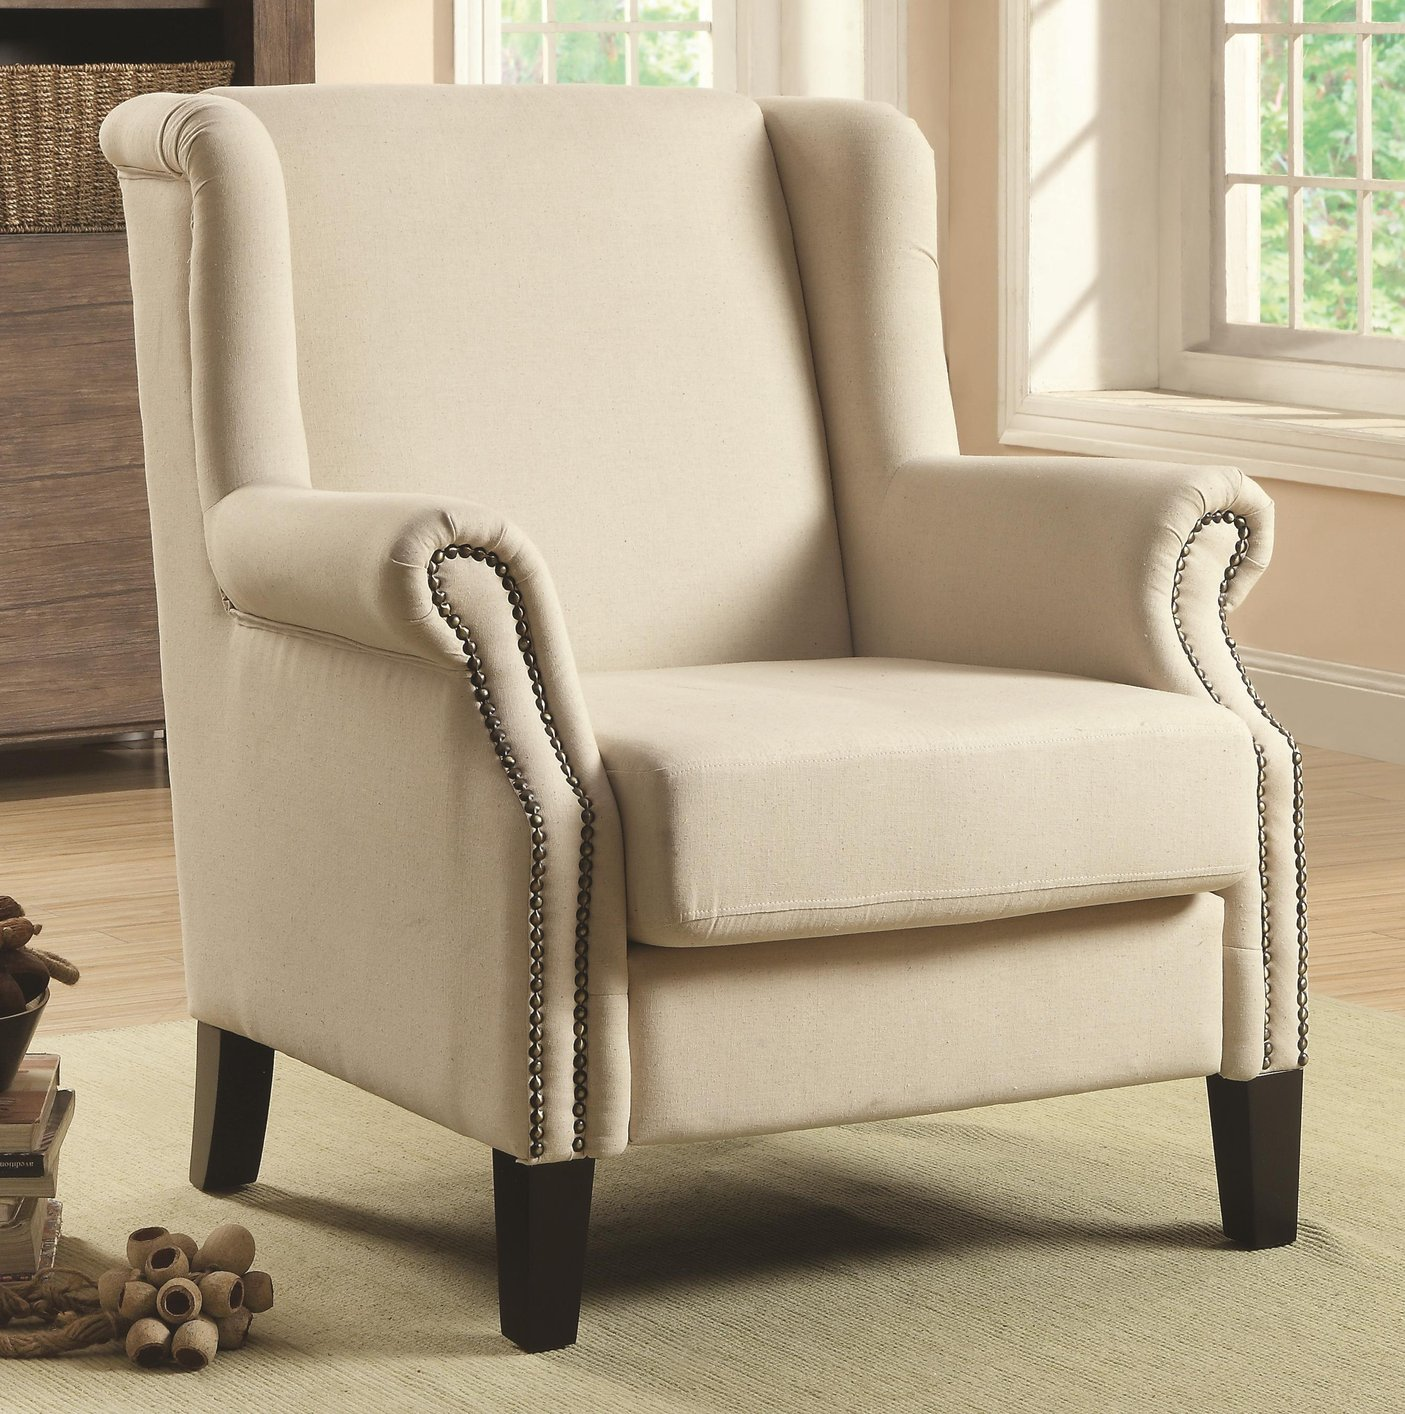 Cute Beige Accent Chair Decor